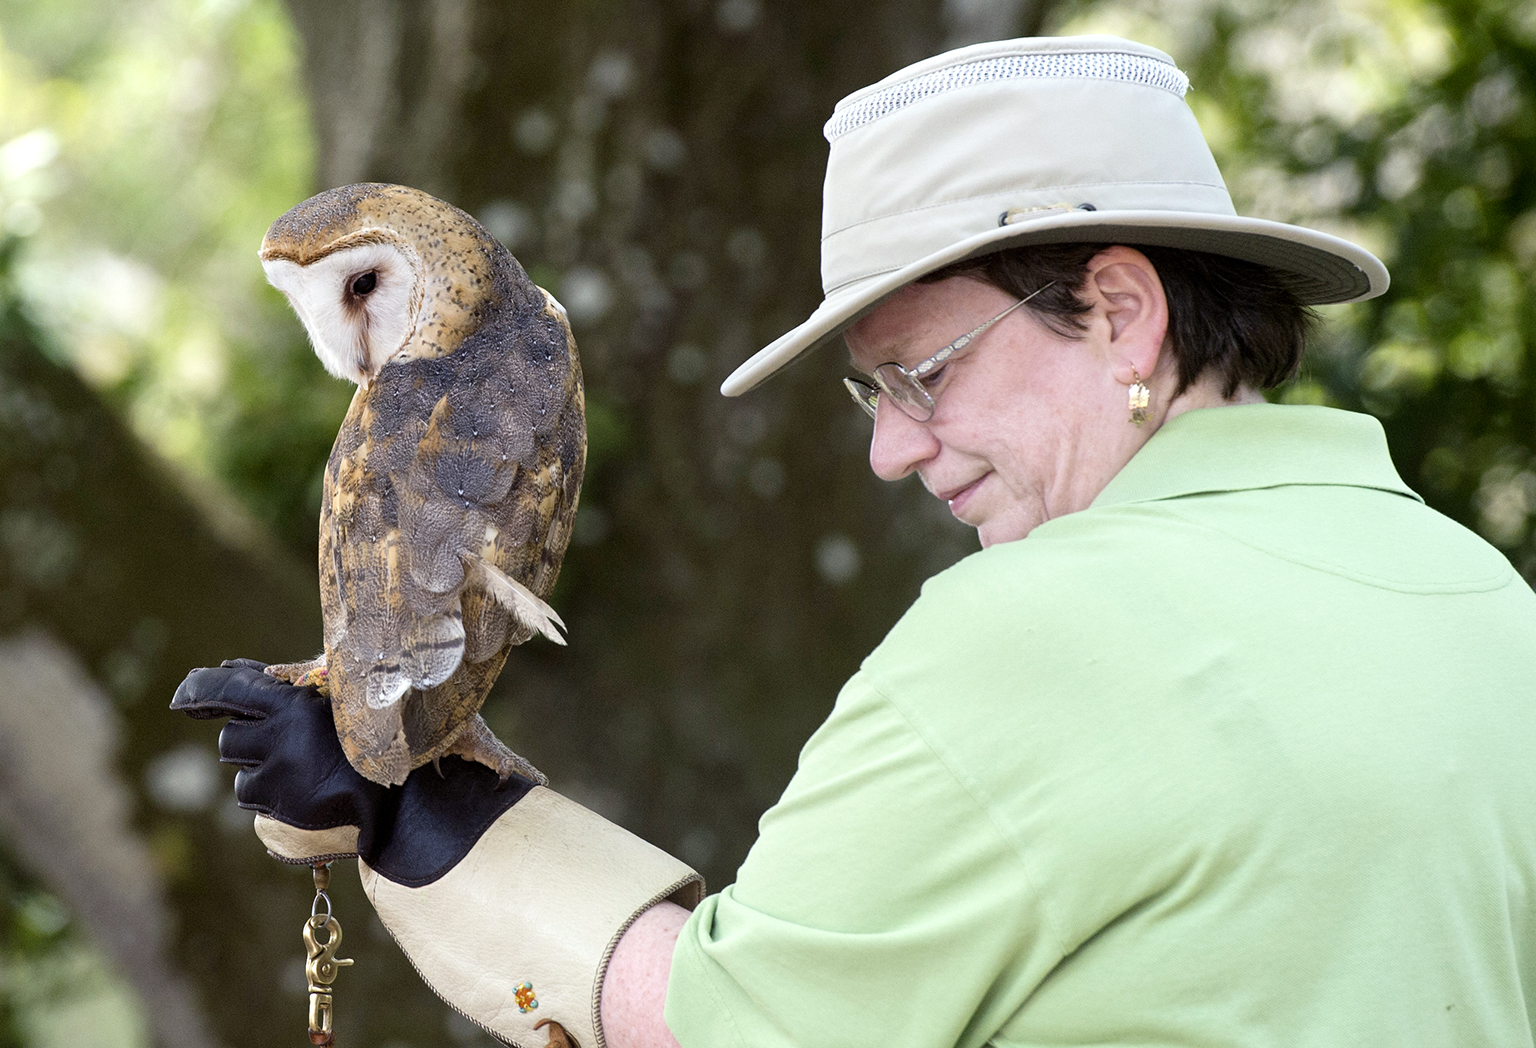 The Treasure Coast Wildlife Center held a free, open house to celebrate their 43rd anniversary on Saturday, March 25, 2017, in Palm City. The event included guided nature trail walks, face and rock painting, educational demonstrations and a patient release. The center is a non-profit organization that depends on donations and volunteers to care for a wide variety of wild animals, including a bald eagle, a crested cara cara, a falcon, owls, hawks, tortoises, alligators and crocodiles.